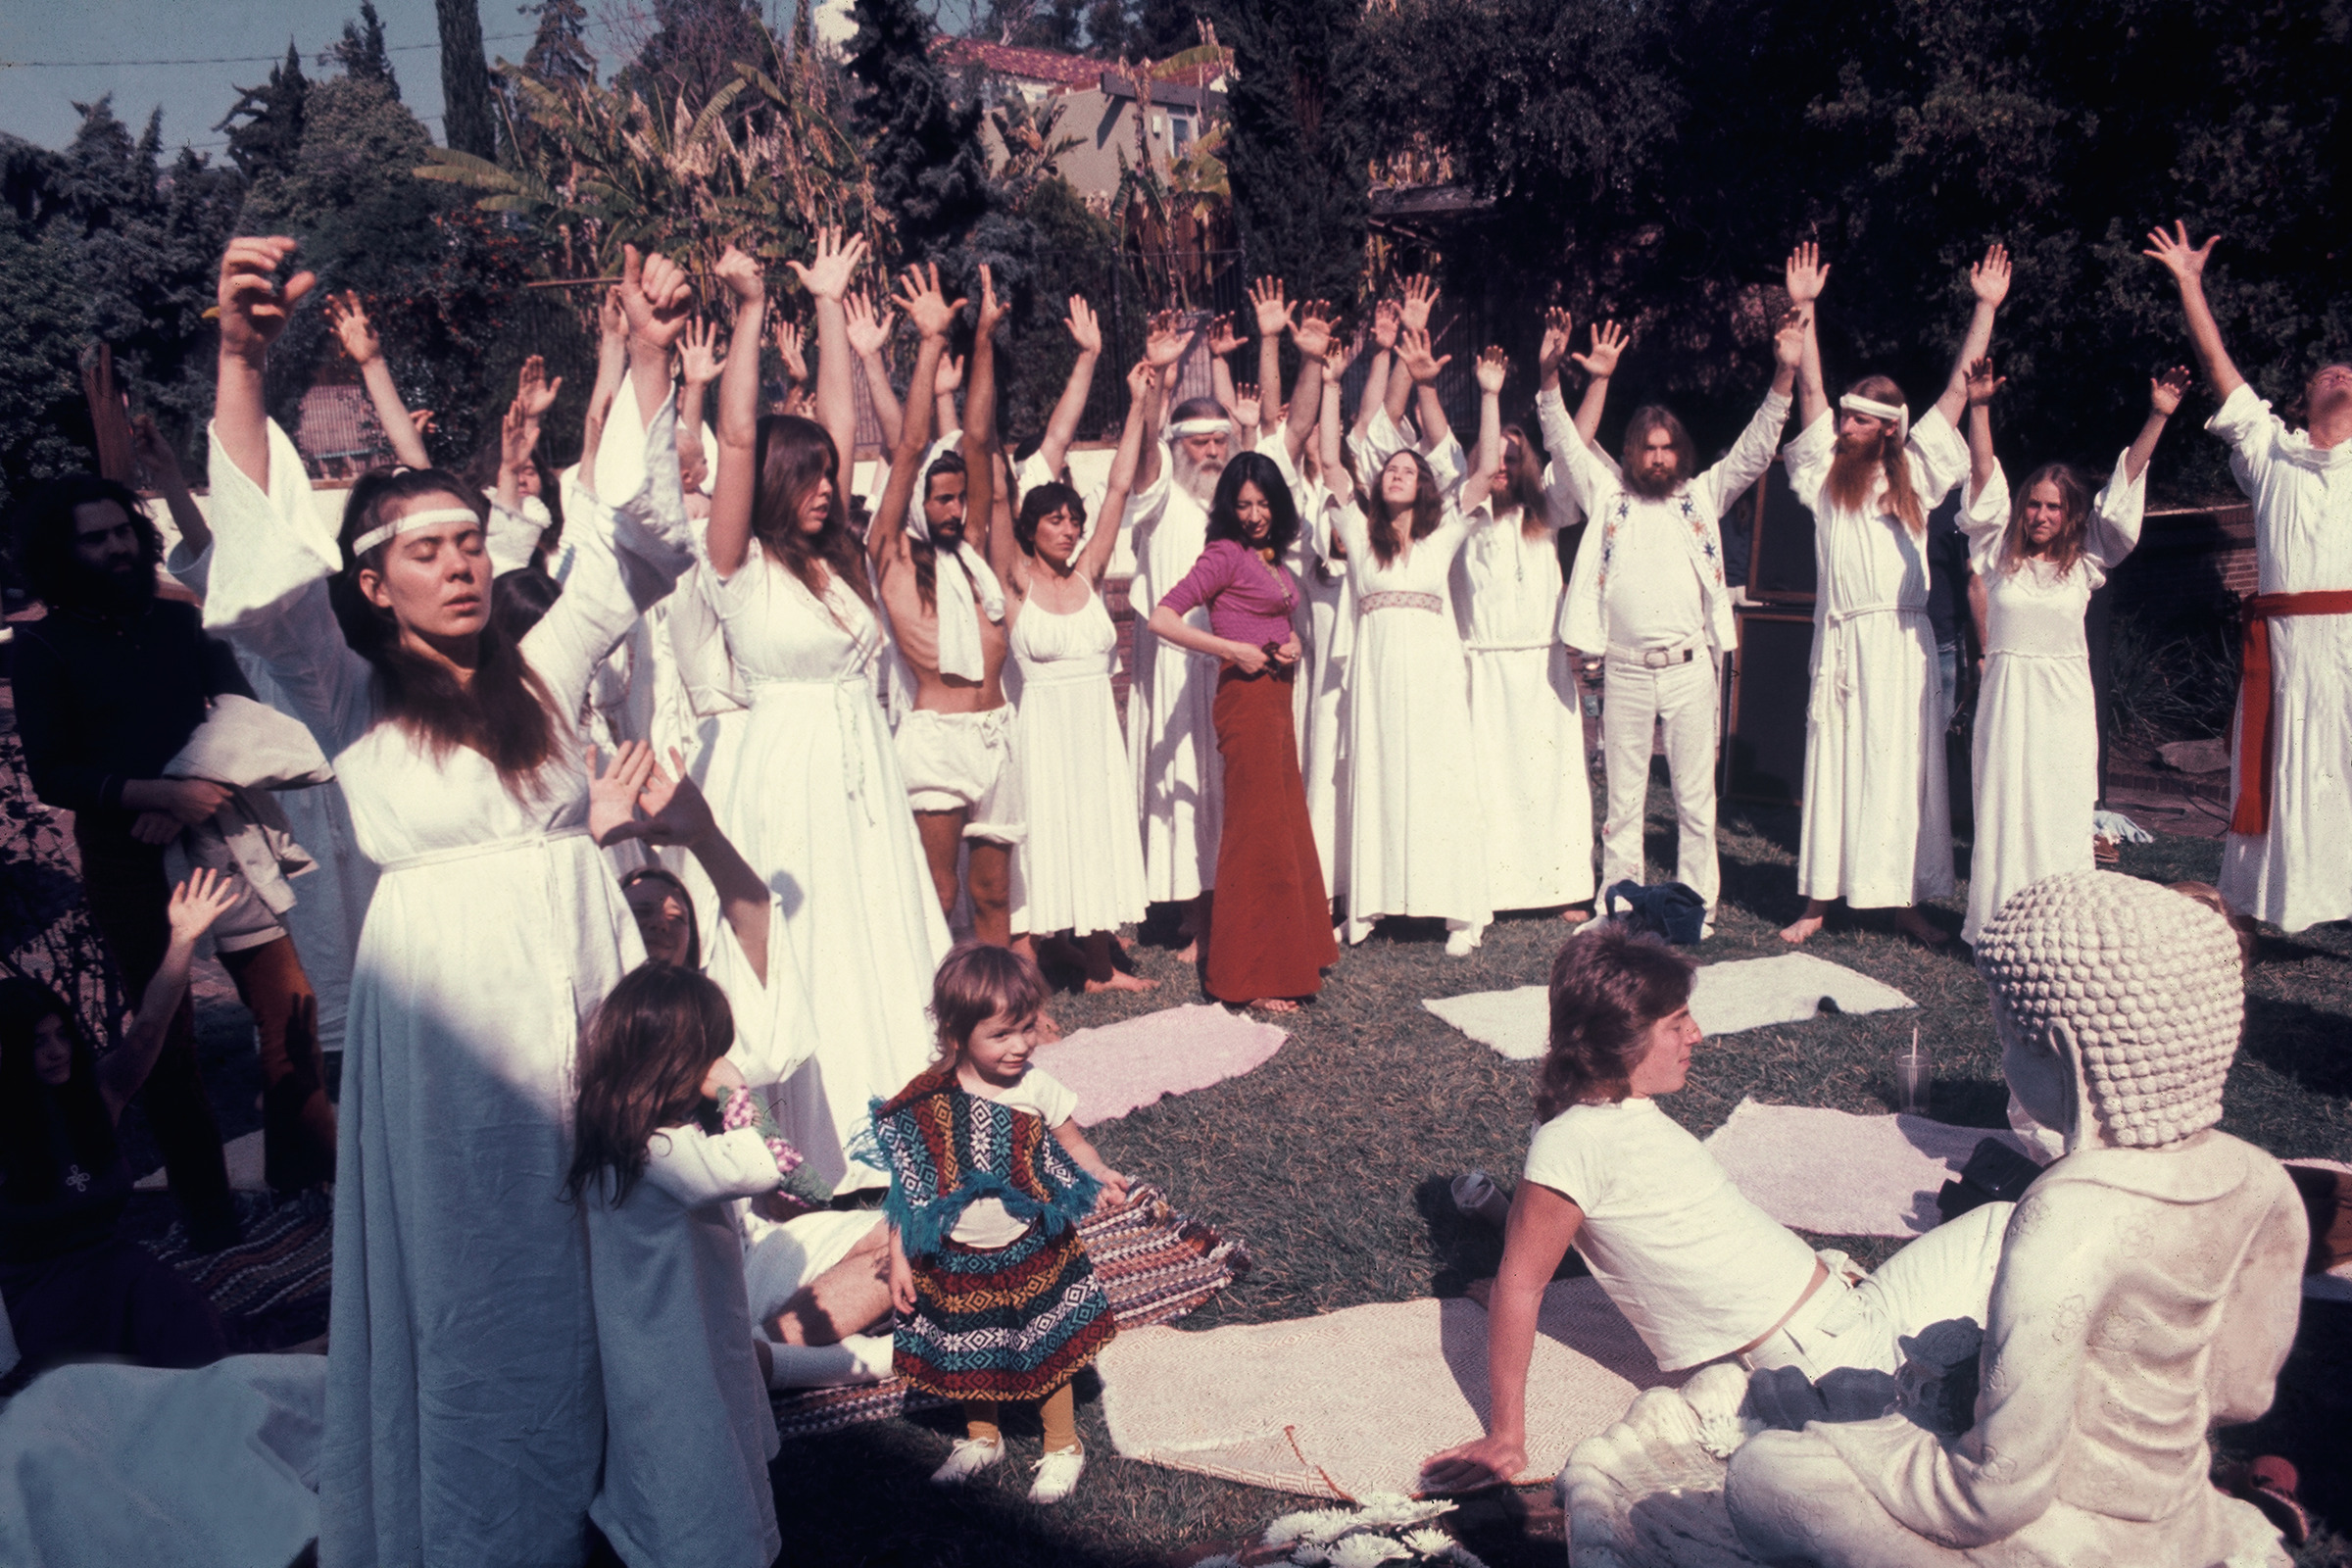 Isis Aquarian,  Source Family Sun Salutation,  1973, color photograph, 8 x 12 inches (image courtesy of Source Family Archives, UCSB)